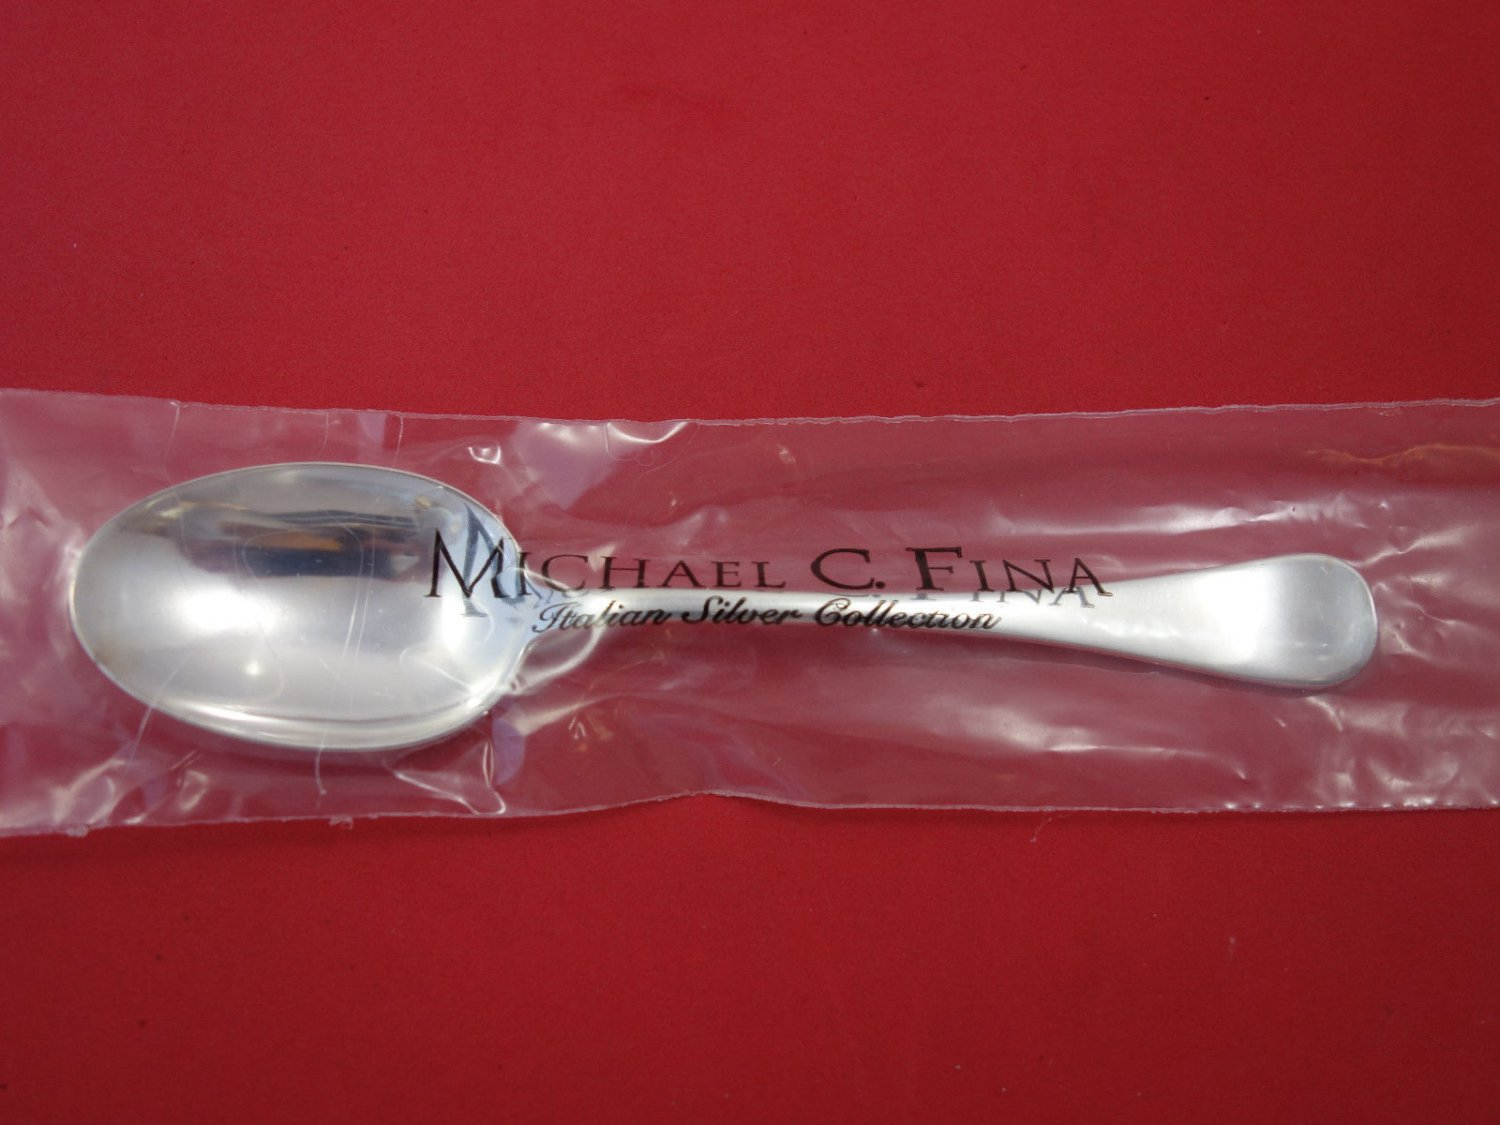 "Spagnolo By Zaramella Argenti Sterling Silver Place Soup Spoon 6 1/2"" New"